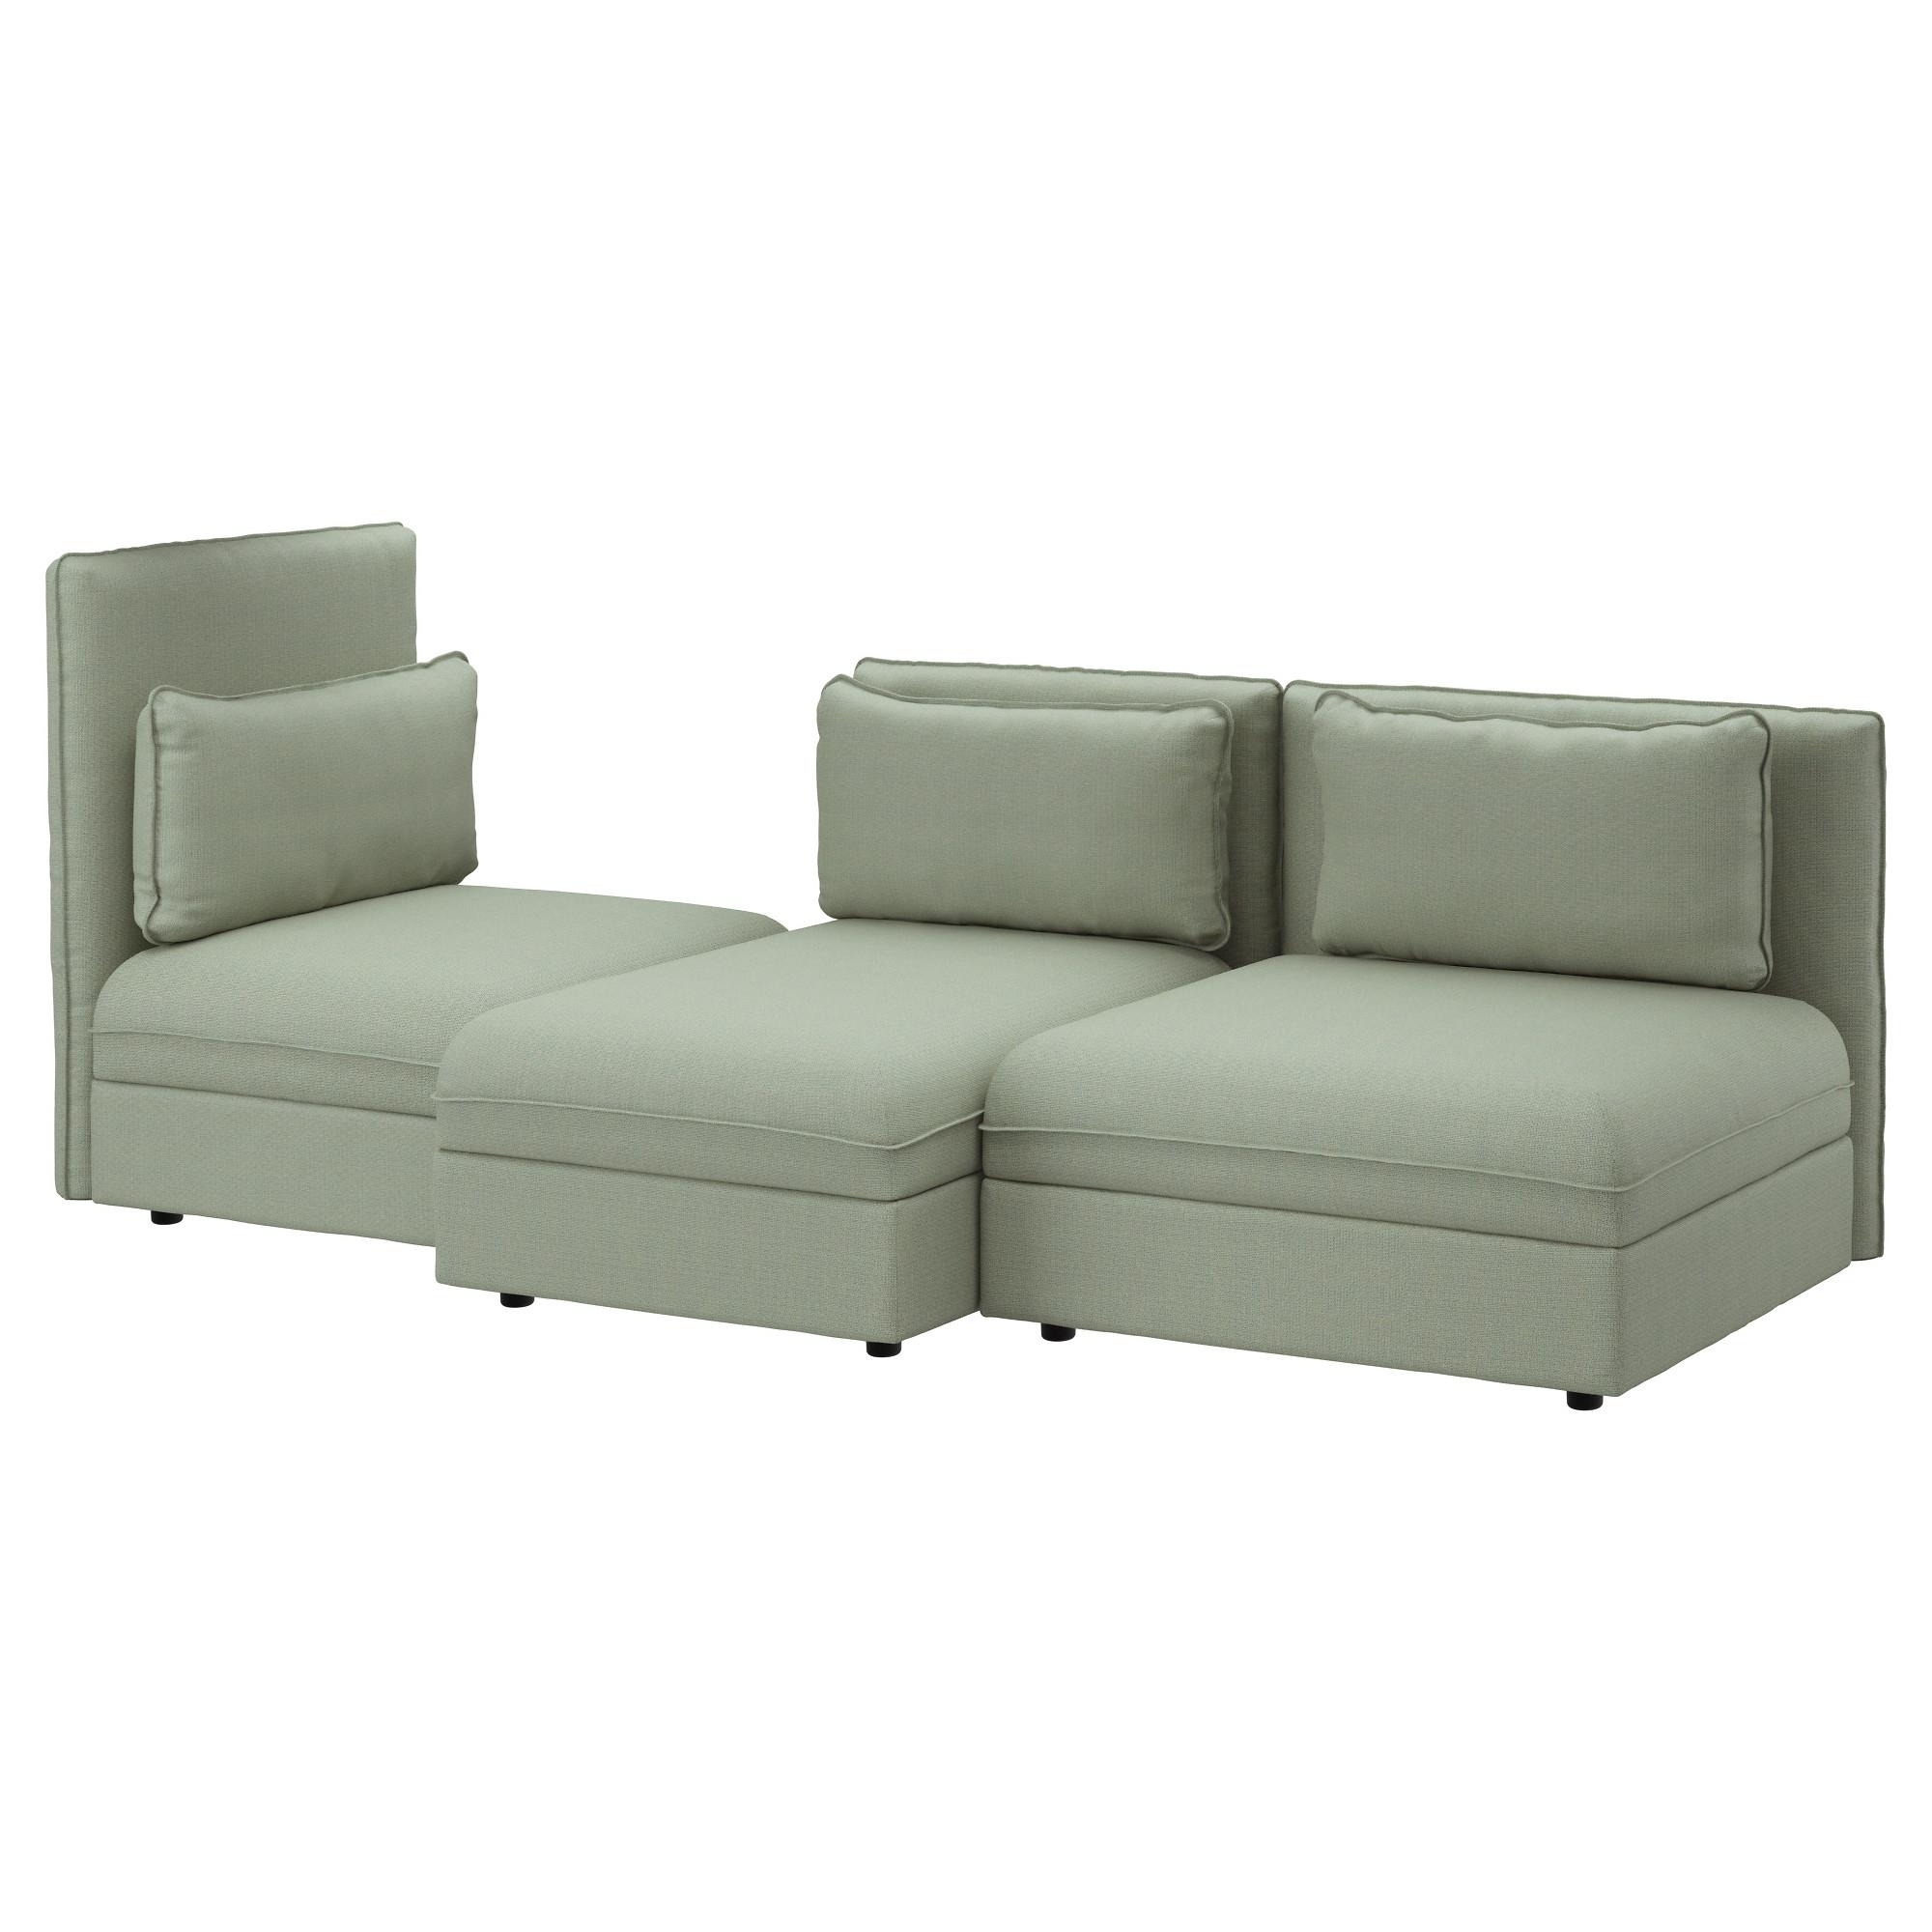 Sofa Ikea Chaise 20 Photos Ikea Chaise Lounge Sofa Sofa Ideas